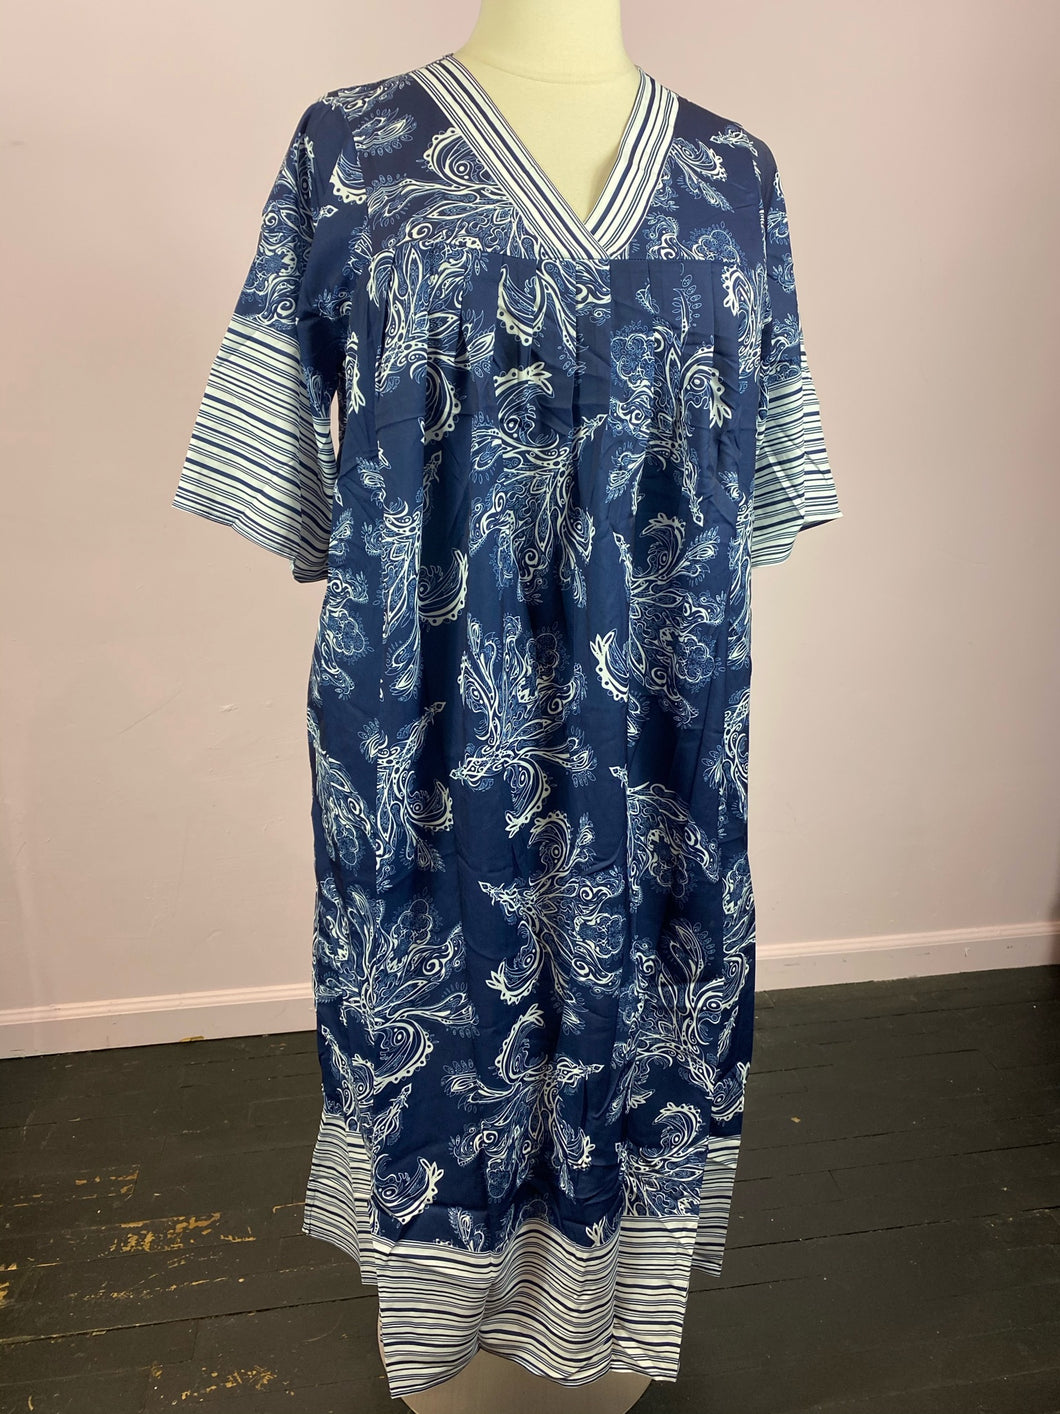 Blue and White Paisley Print Caftan by SHEIN, Sizes 1X, 2X, 3X